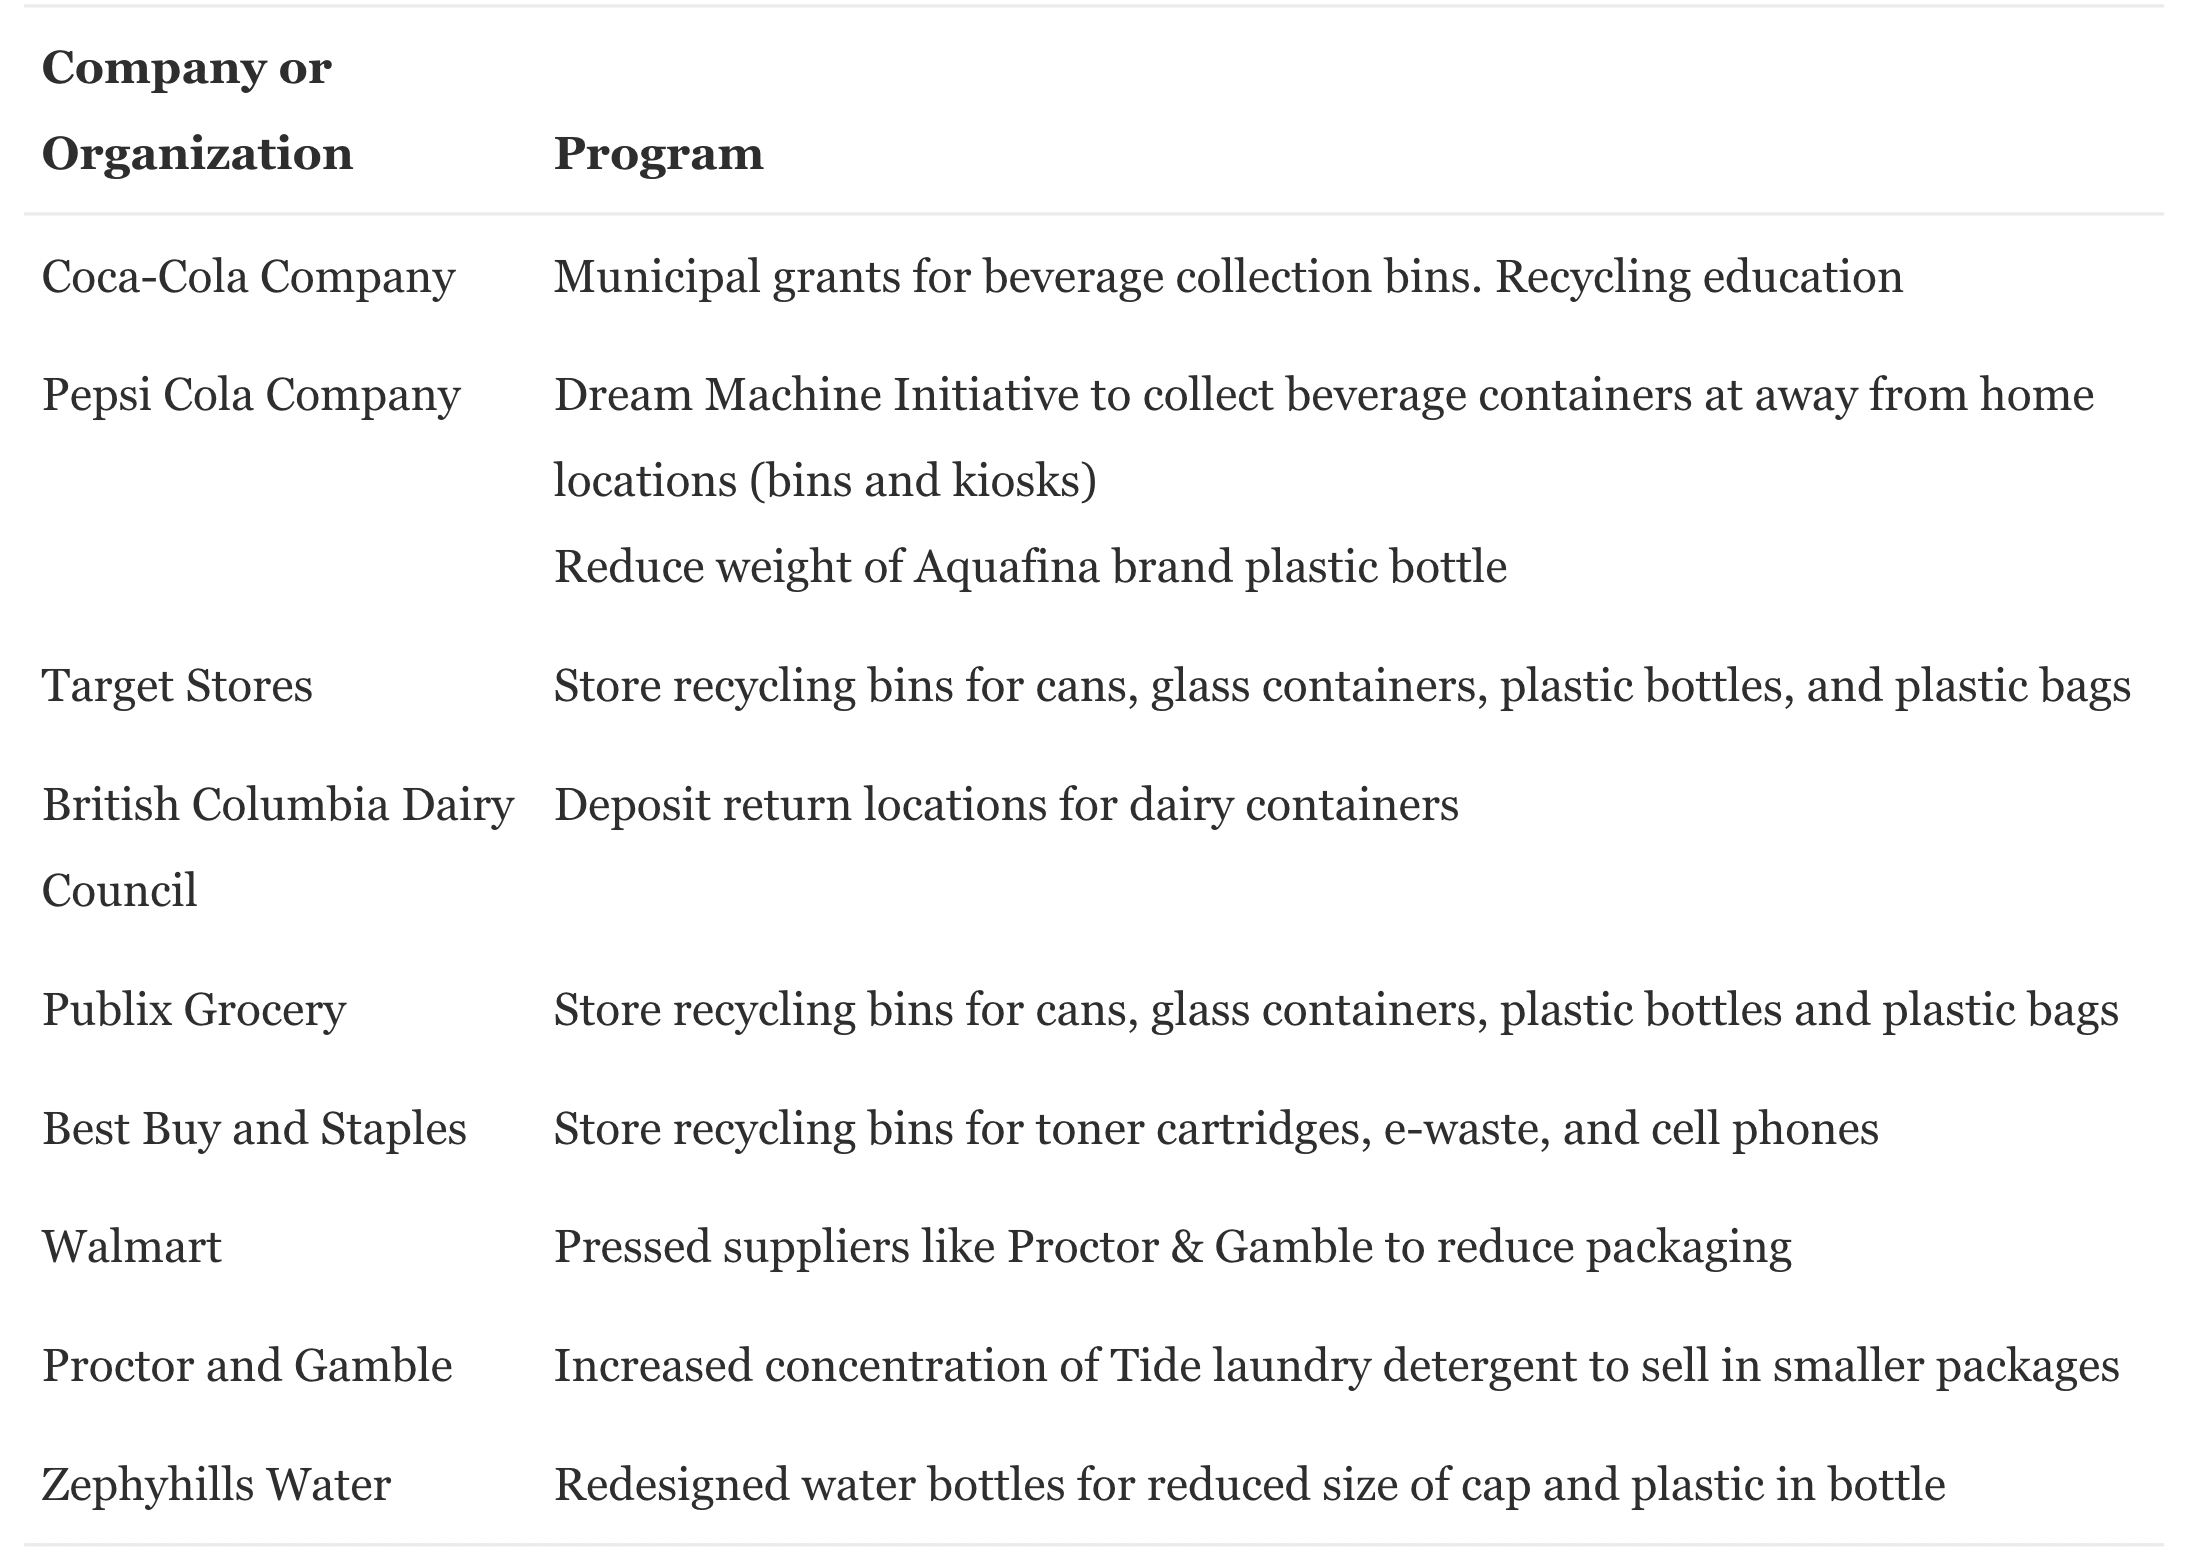 Voluntary programs by companies in North America under the Product Stewardship Program